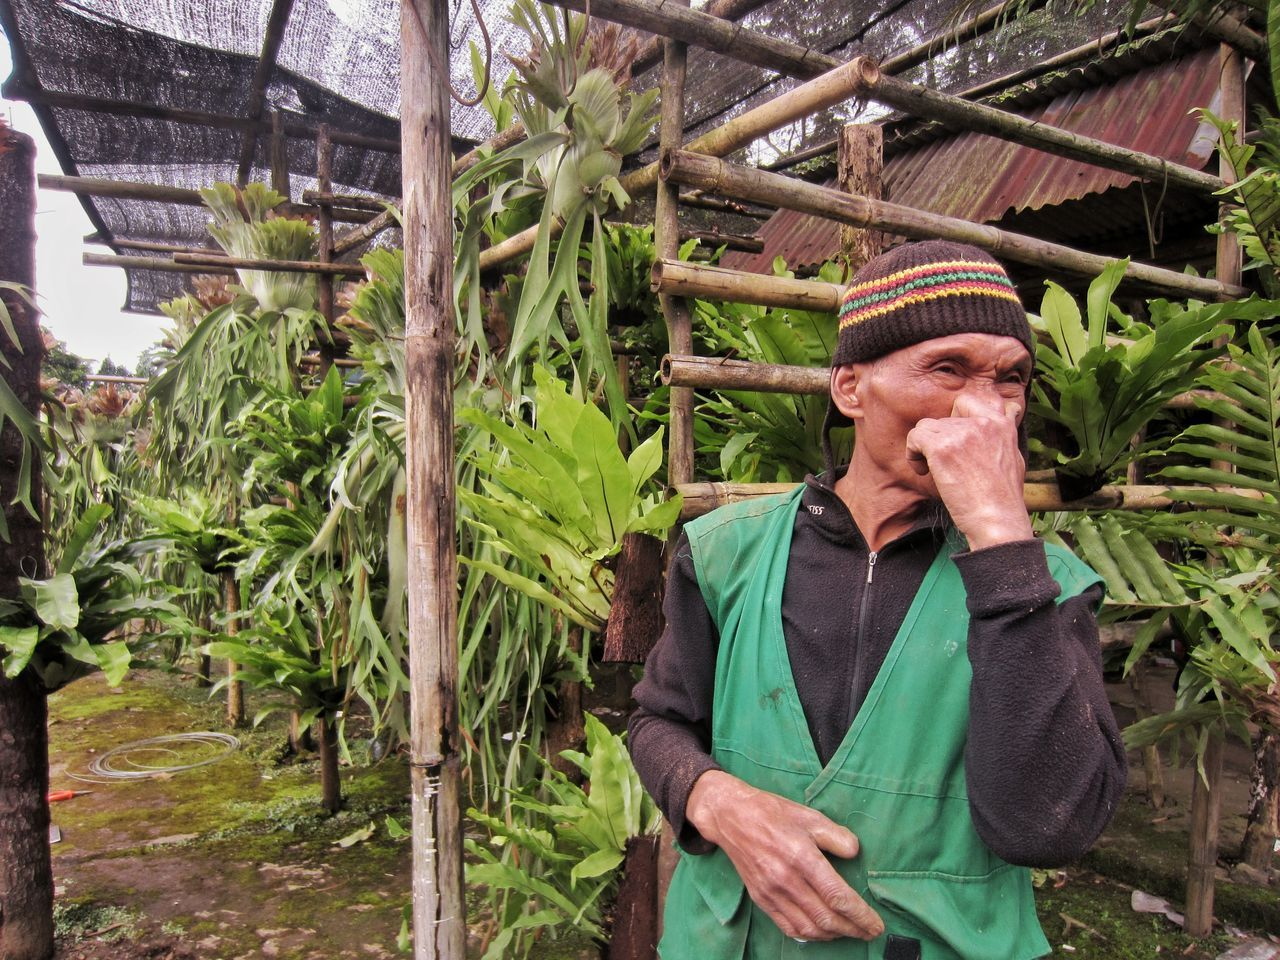 No thumb. Street Photography One Person One Man Only Nursery Garden Adults Only Plant Nature Senior Adult Plants Plantation Plants And Garden Gardening Unique Plant Unique Perspectives Badass Badass For Life at Puncak  Bogor Greenhouse